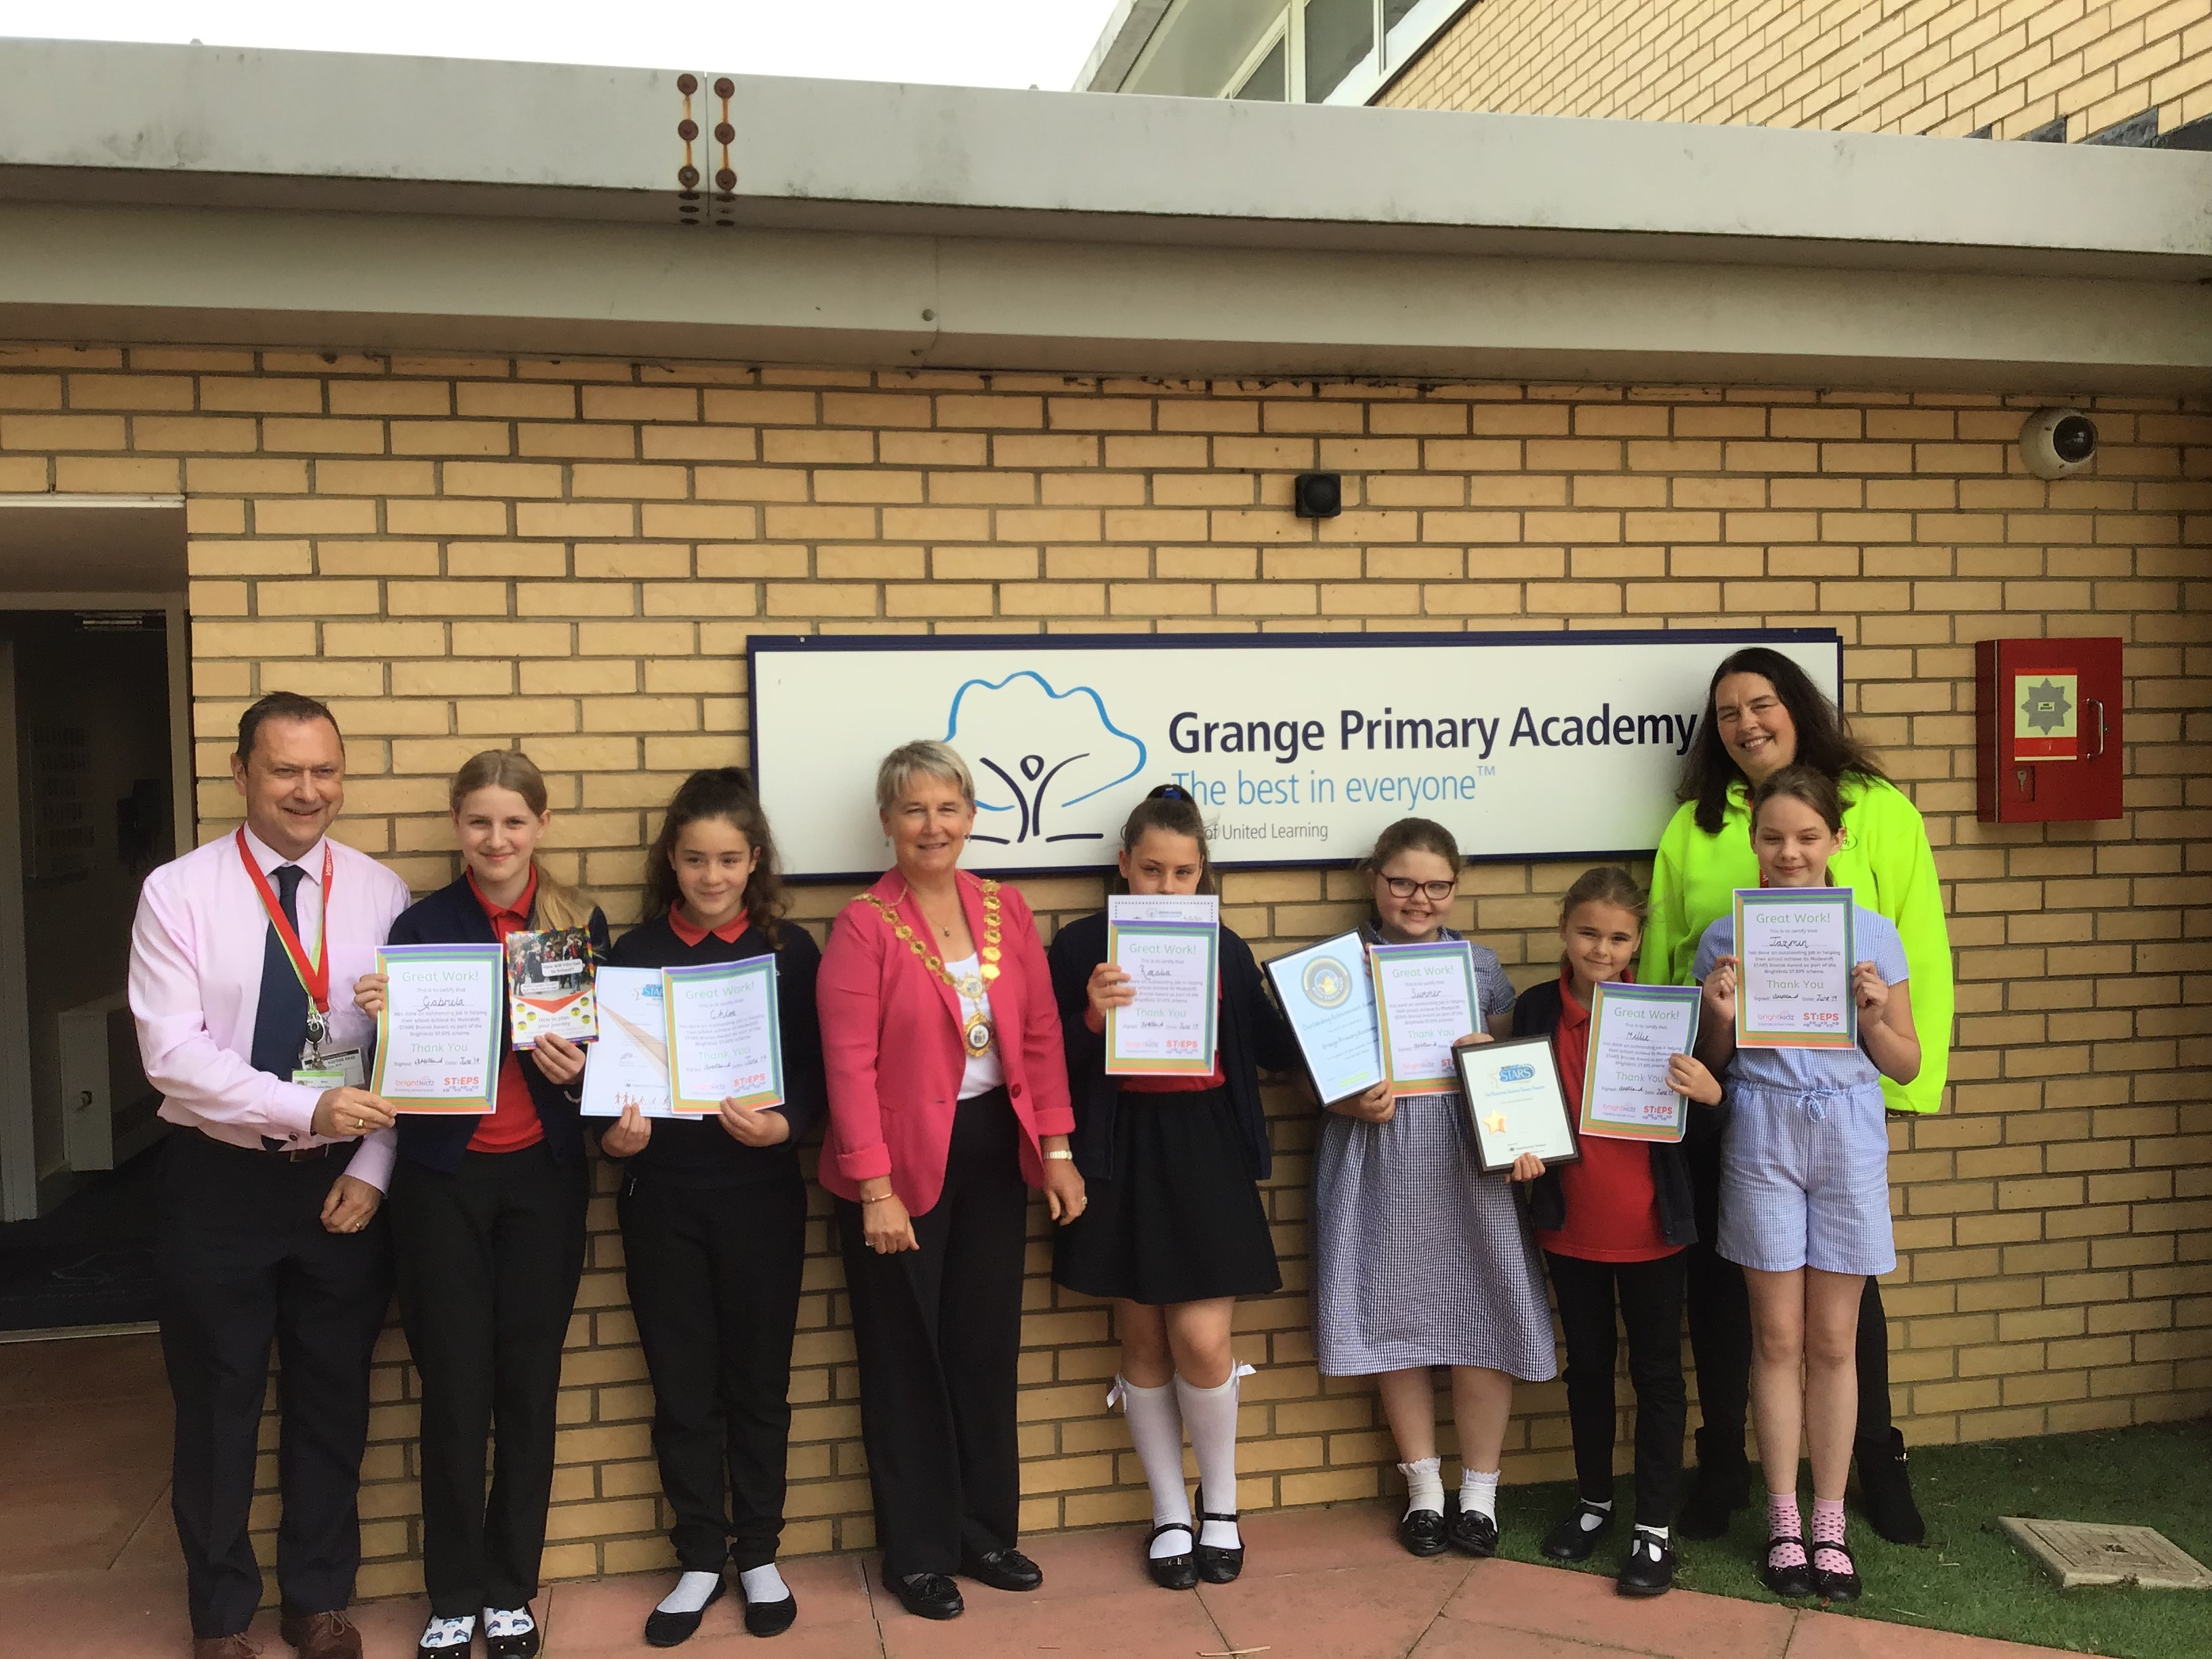 road safety heroes from Grange